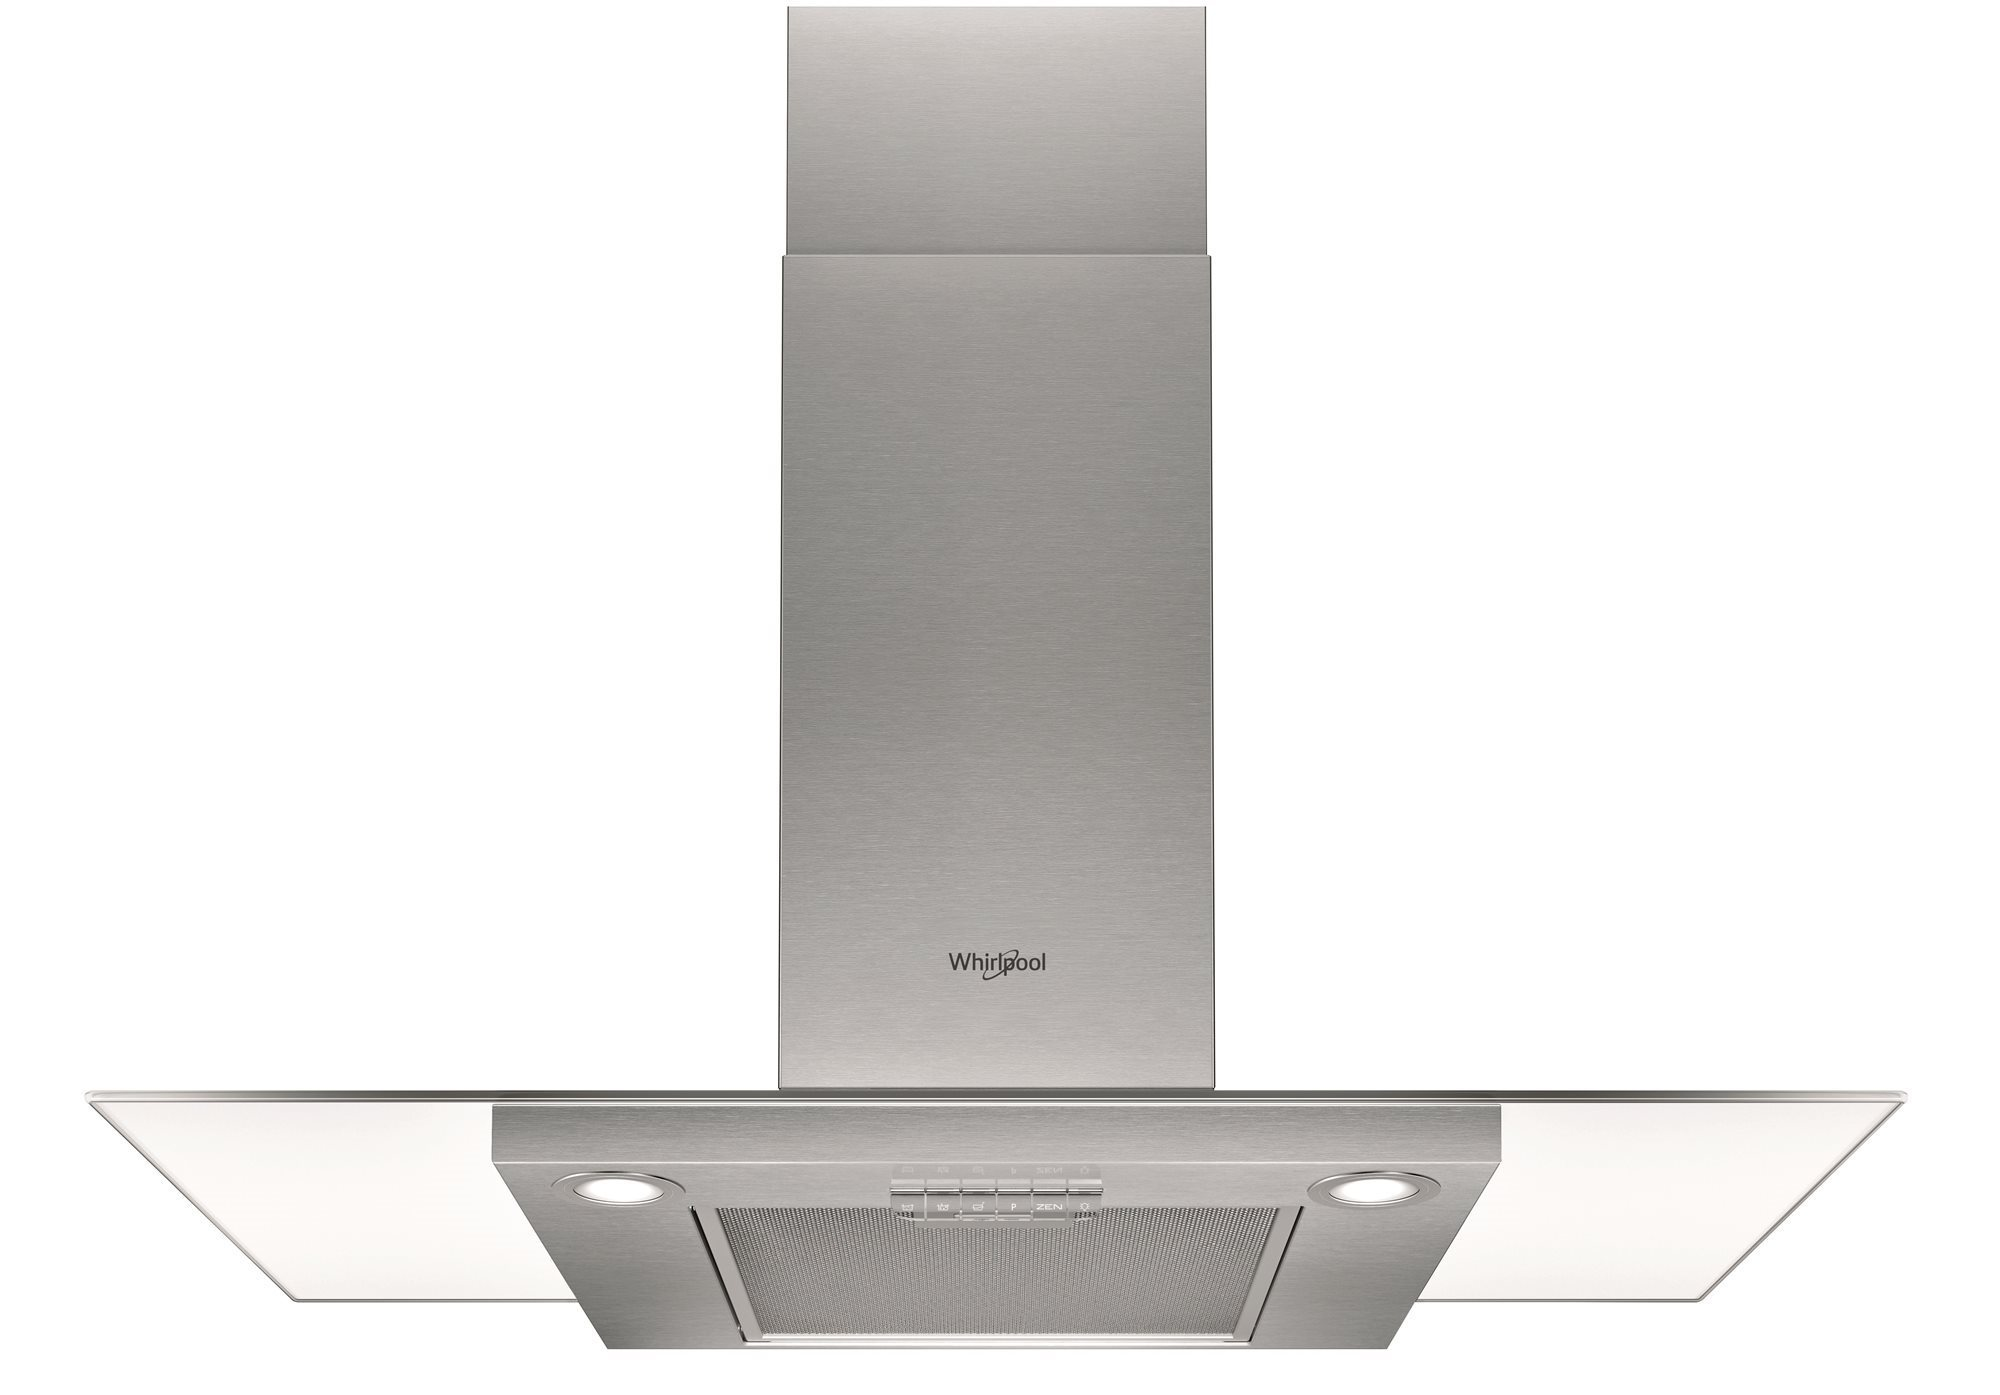 WHIRLPOOL WIFG 103 F LE X